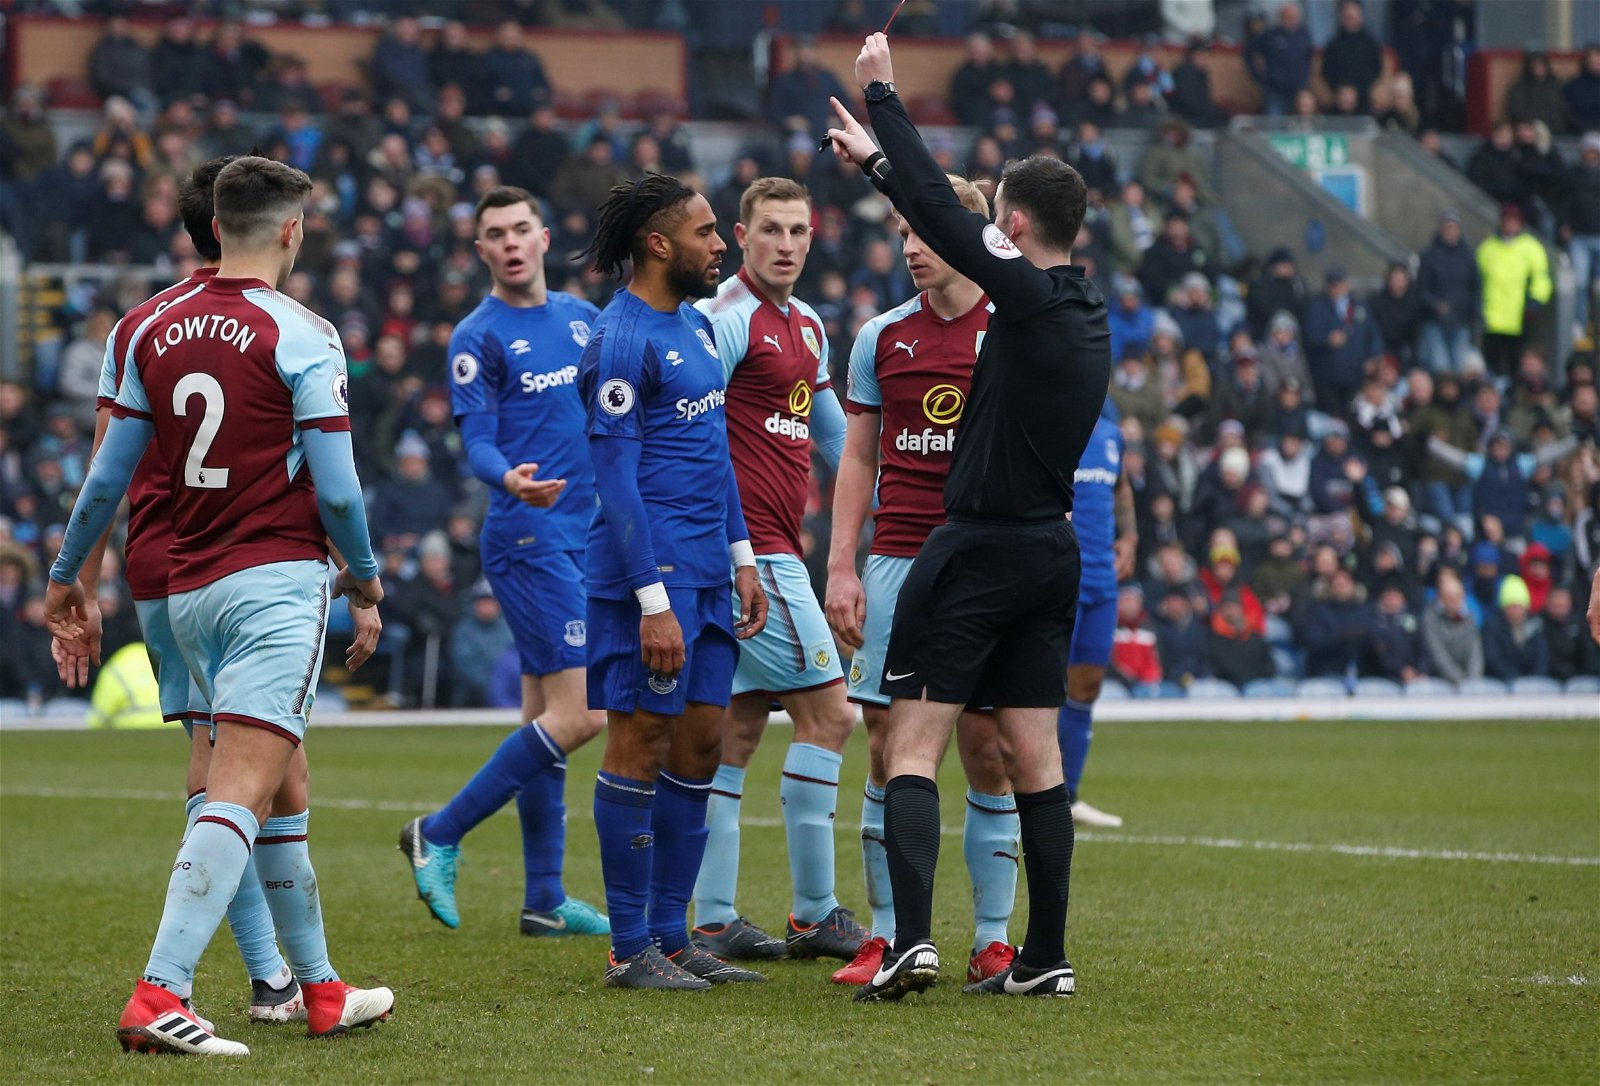 Everton defender Ashley Williams is sent off